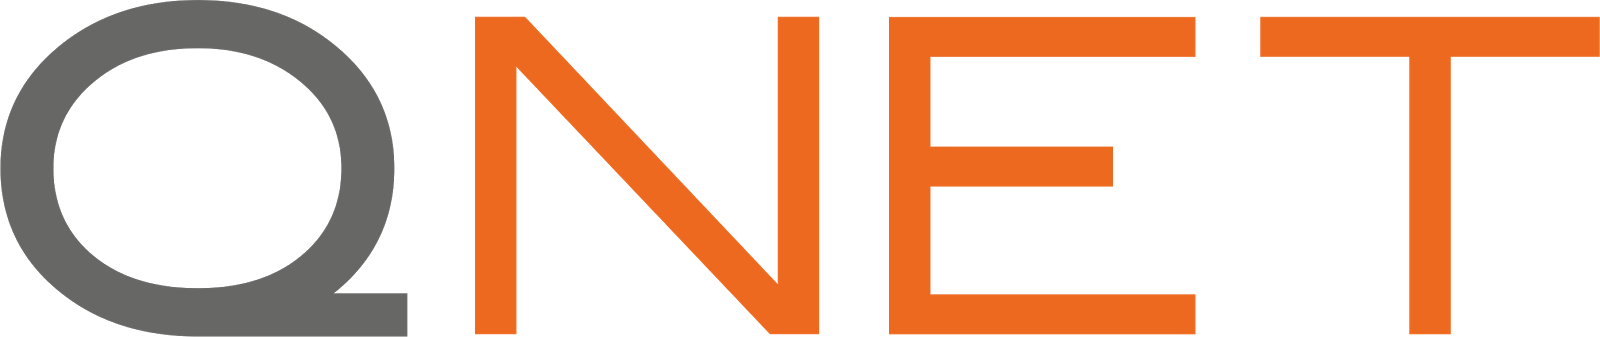 Image result for qnet logo